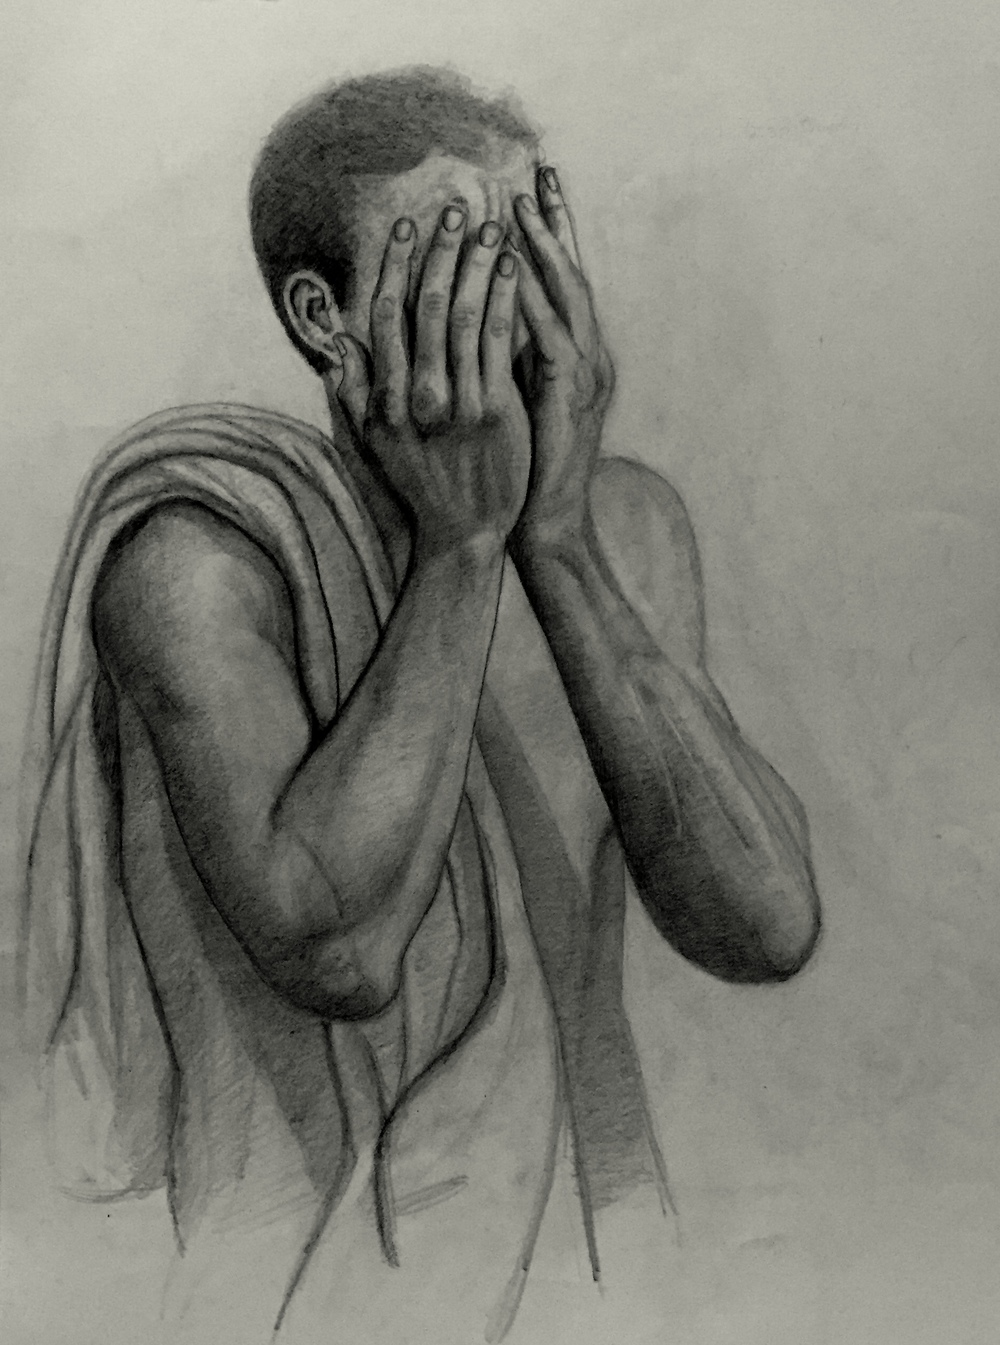 Study for The Expulsion, Graphite